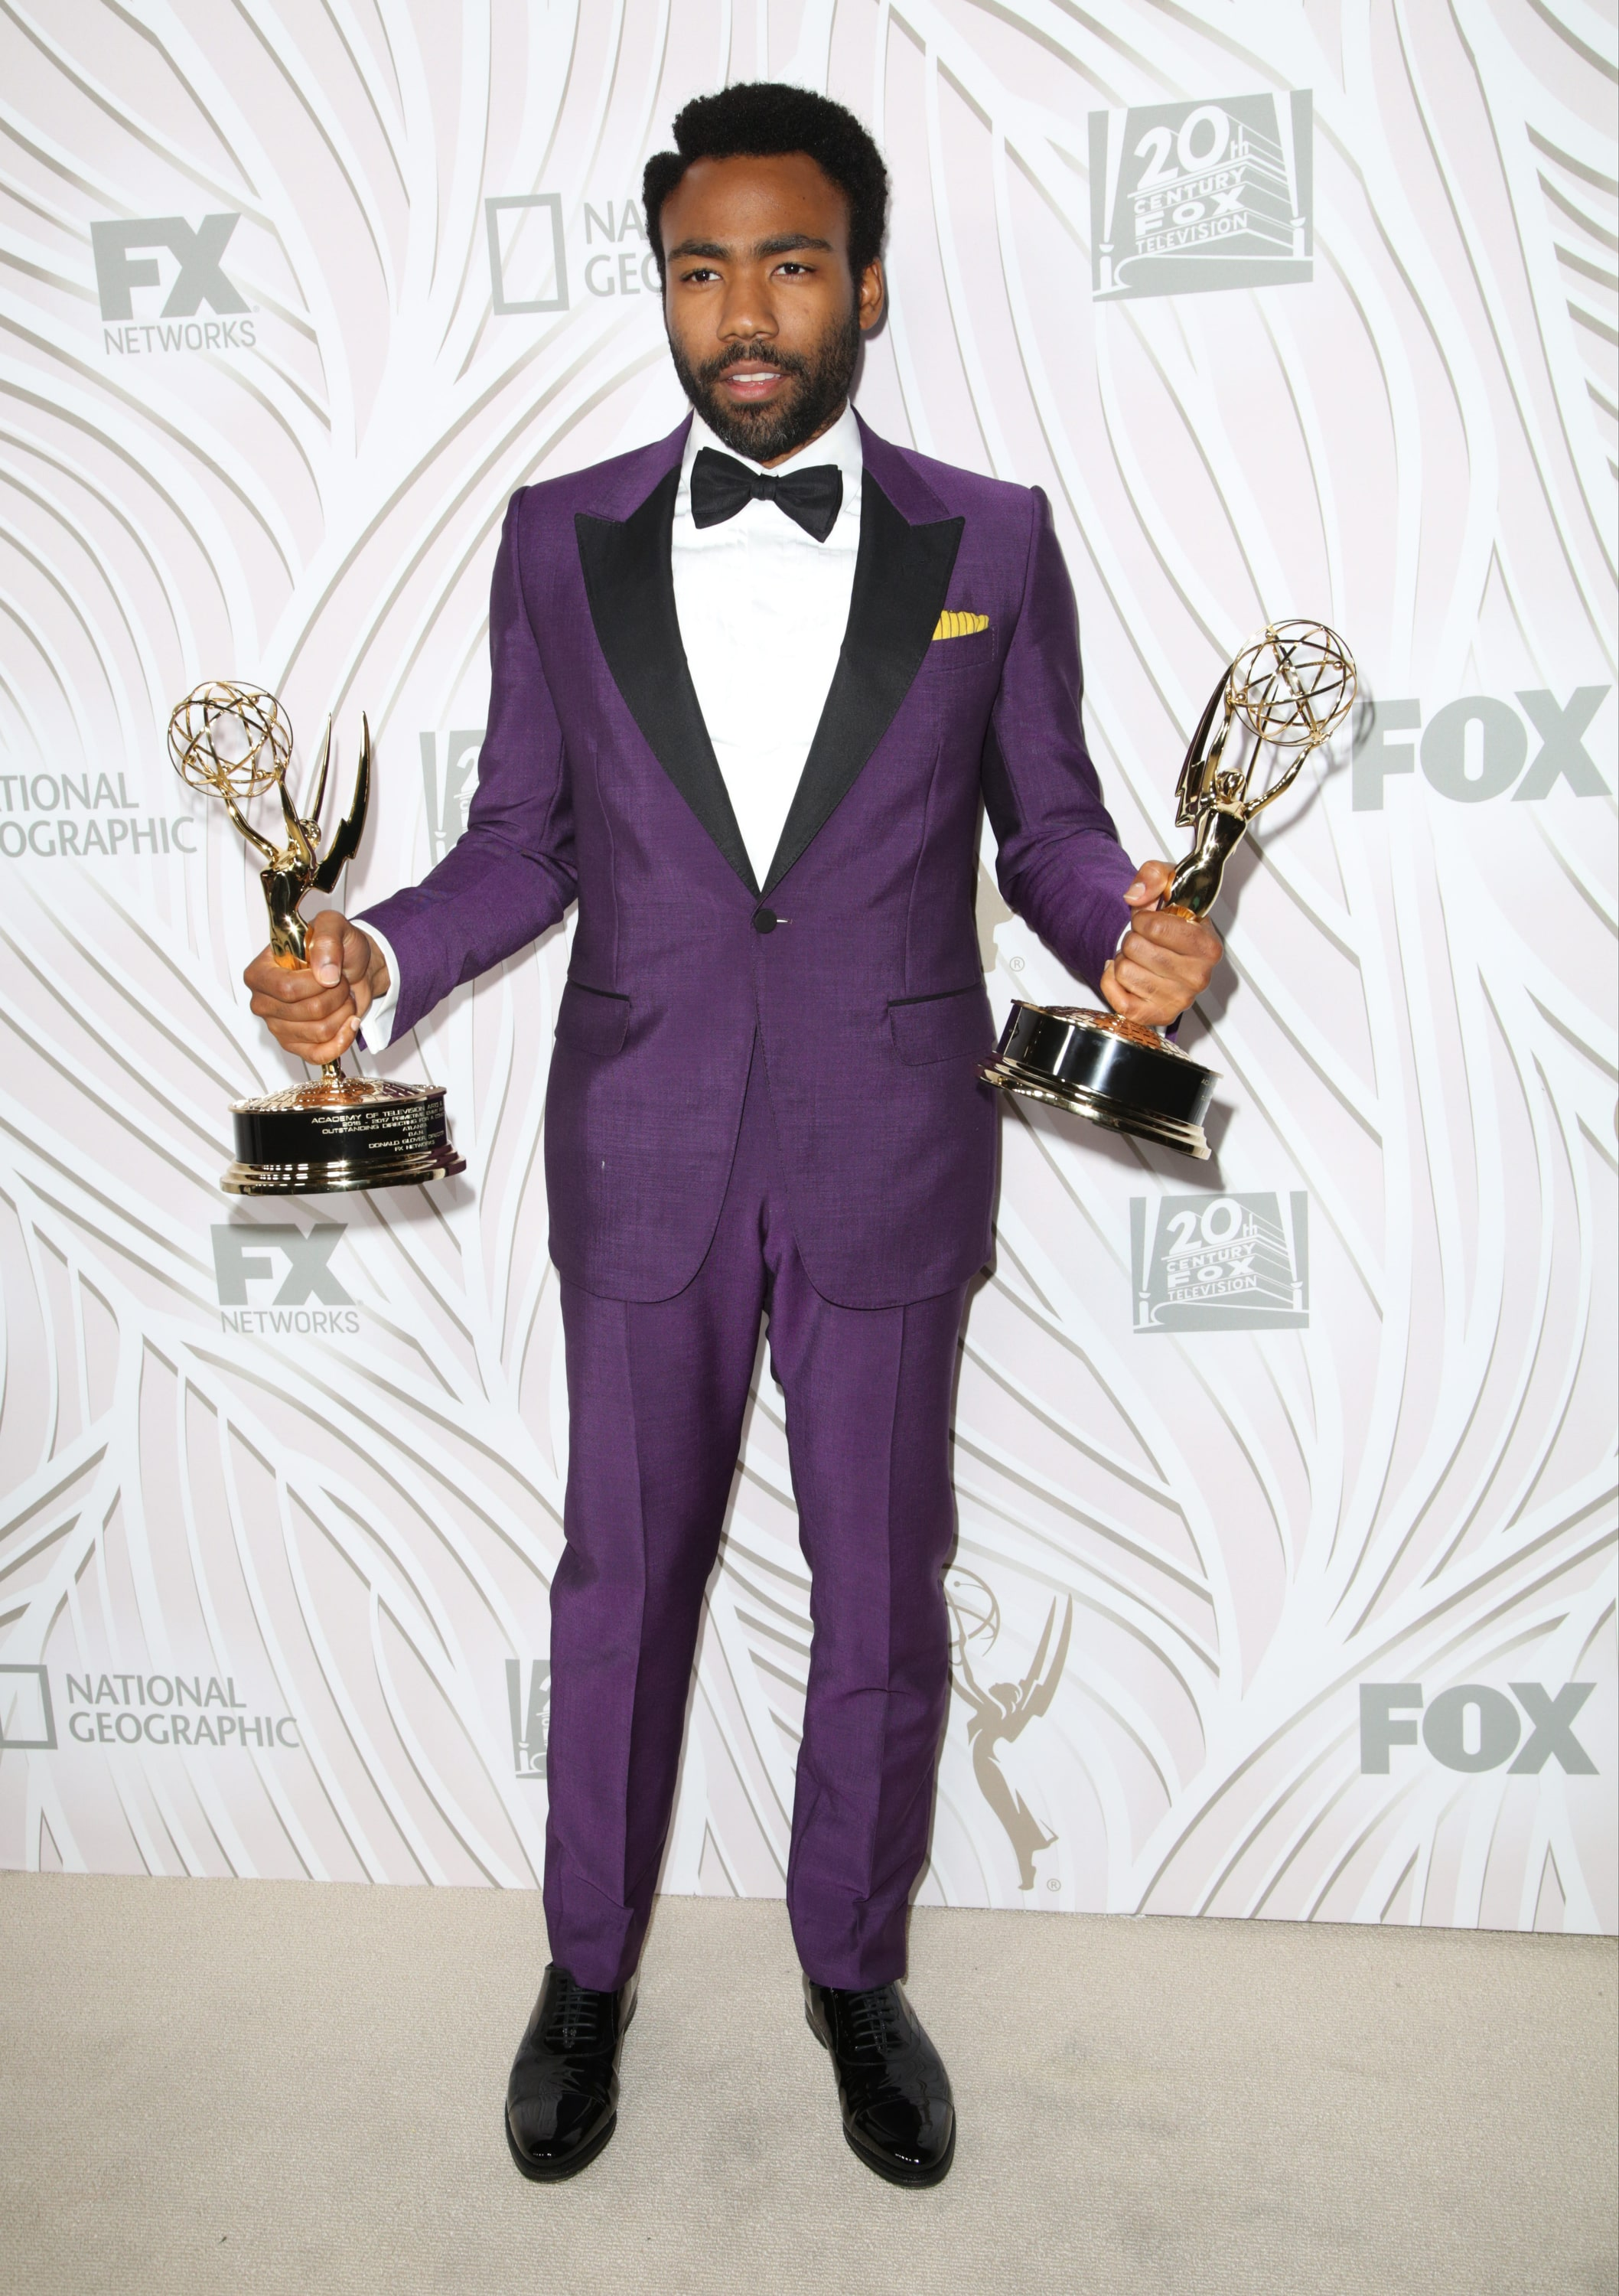 pictures Donald Glovers Tuxedo Was The Real Winner Of The Emmys